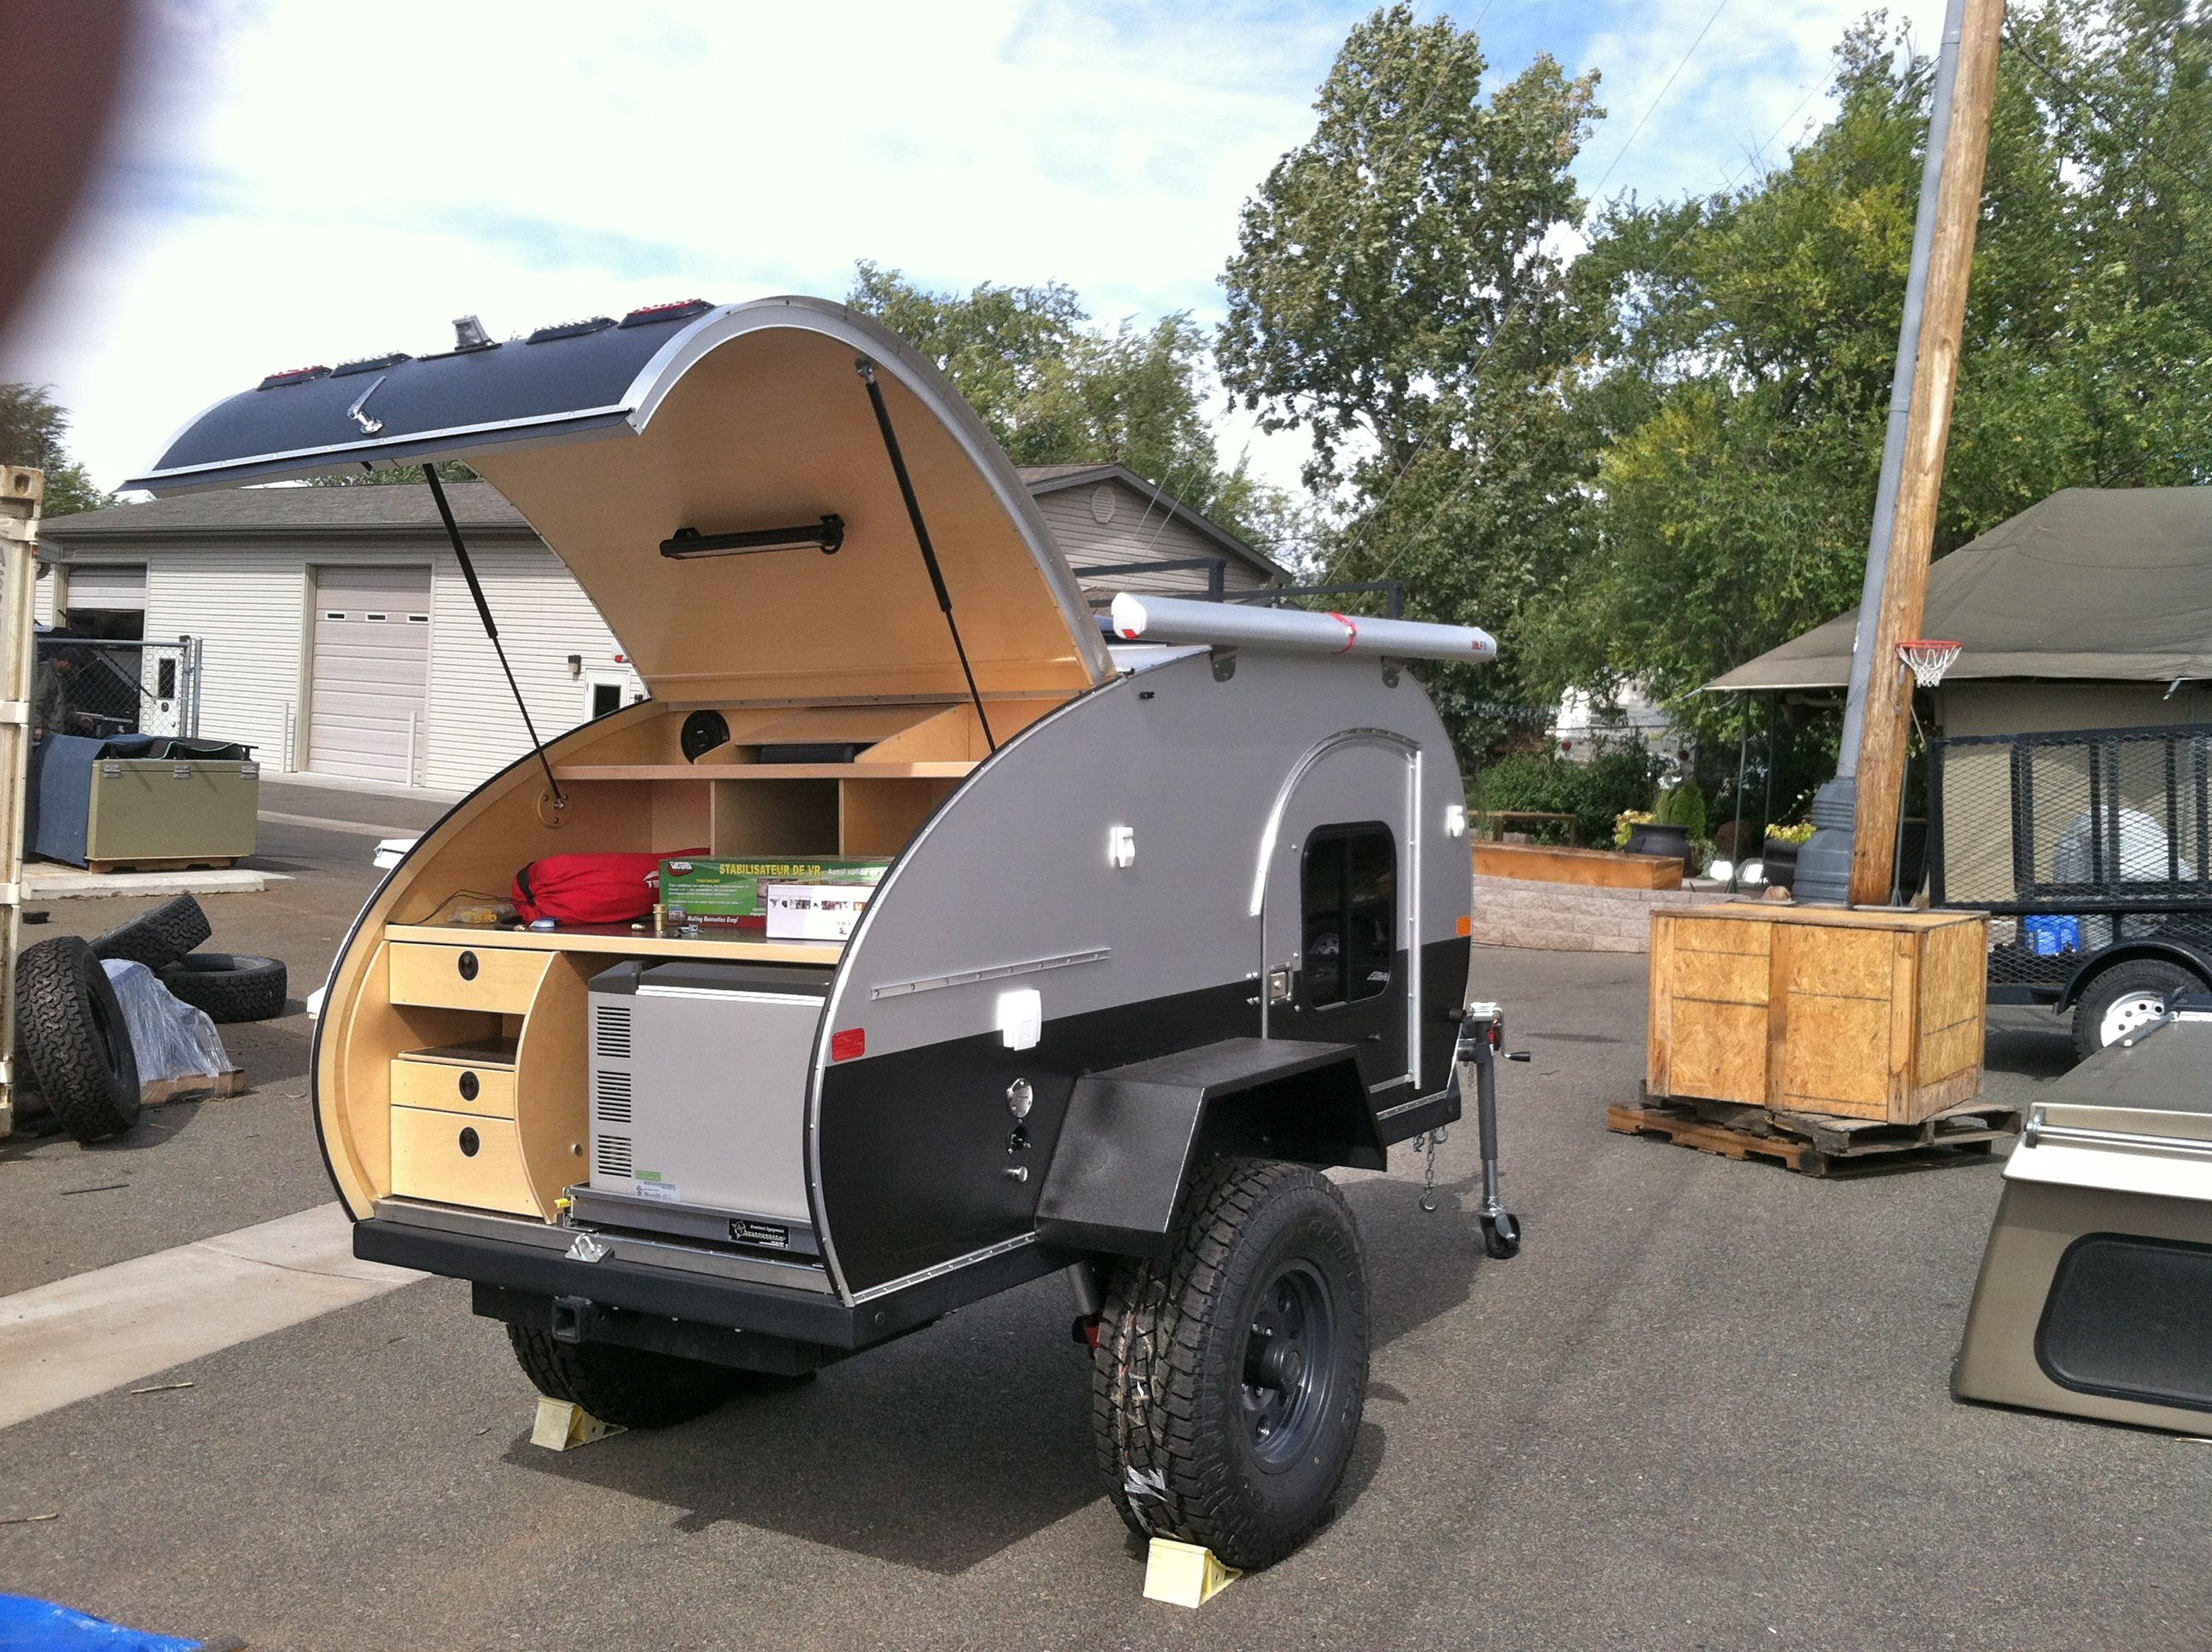 Compact Trailer For Competition Built In Wash Station And Sleeping